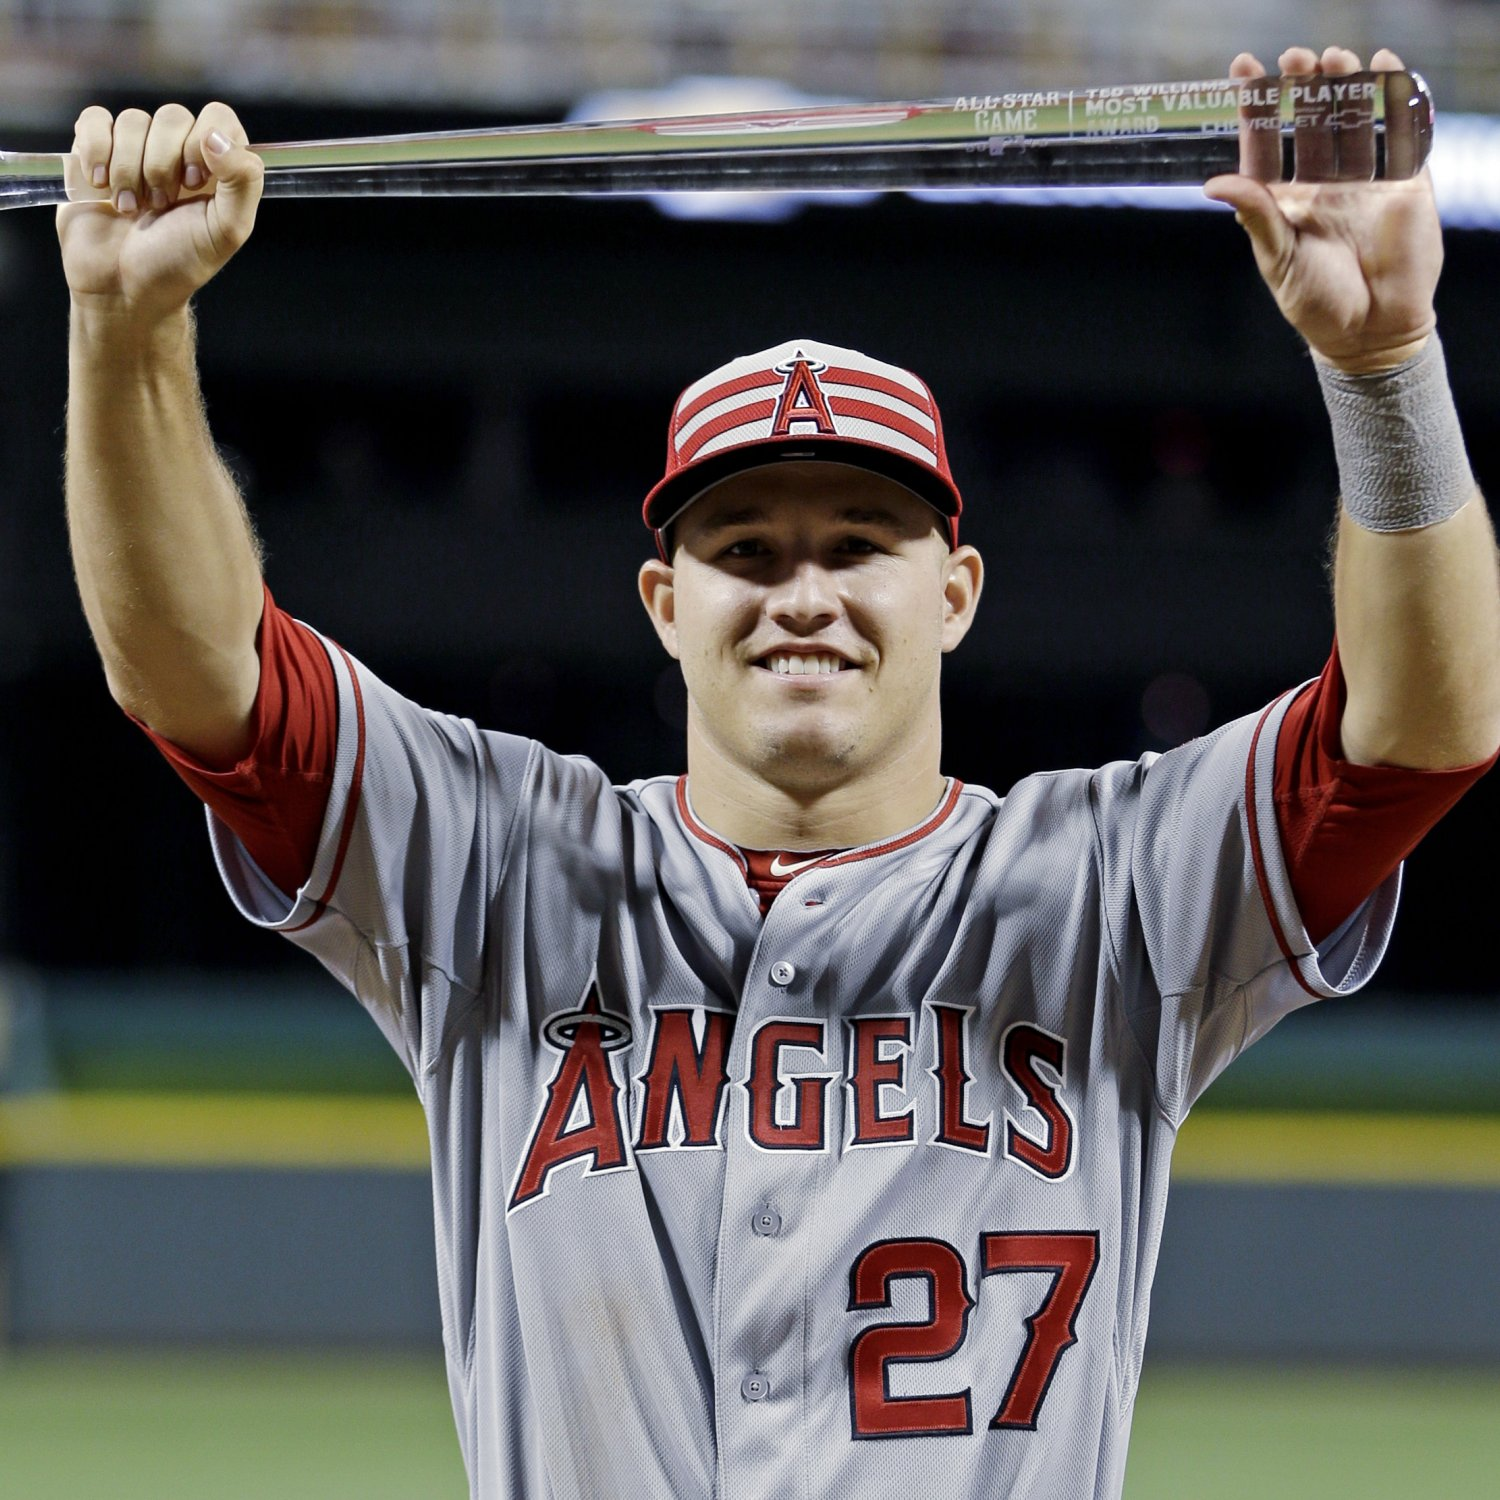 MLB All-Star Game 2015 MVP: Mike Trout's Stats, Highlights